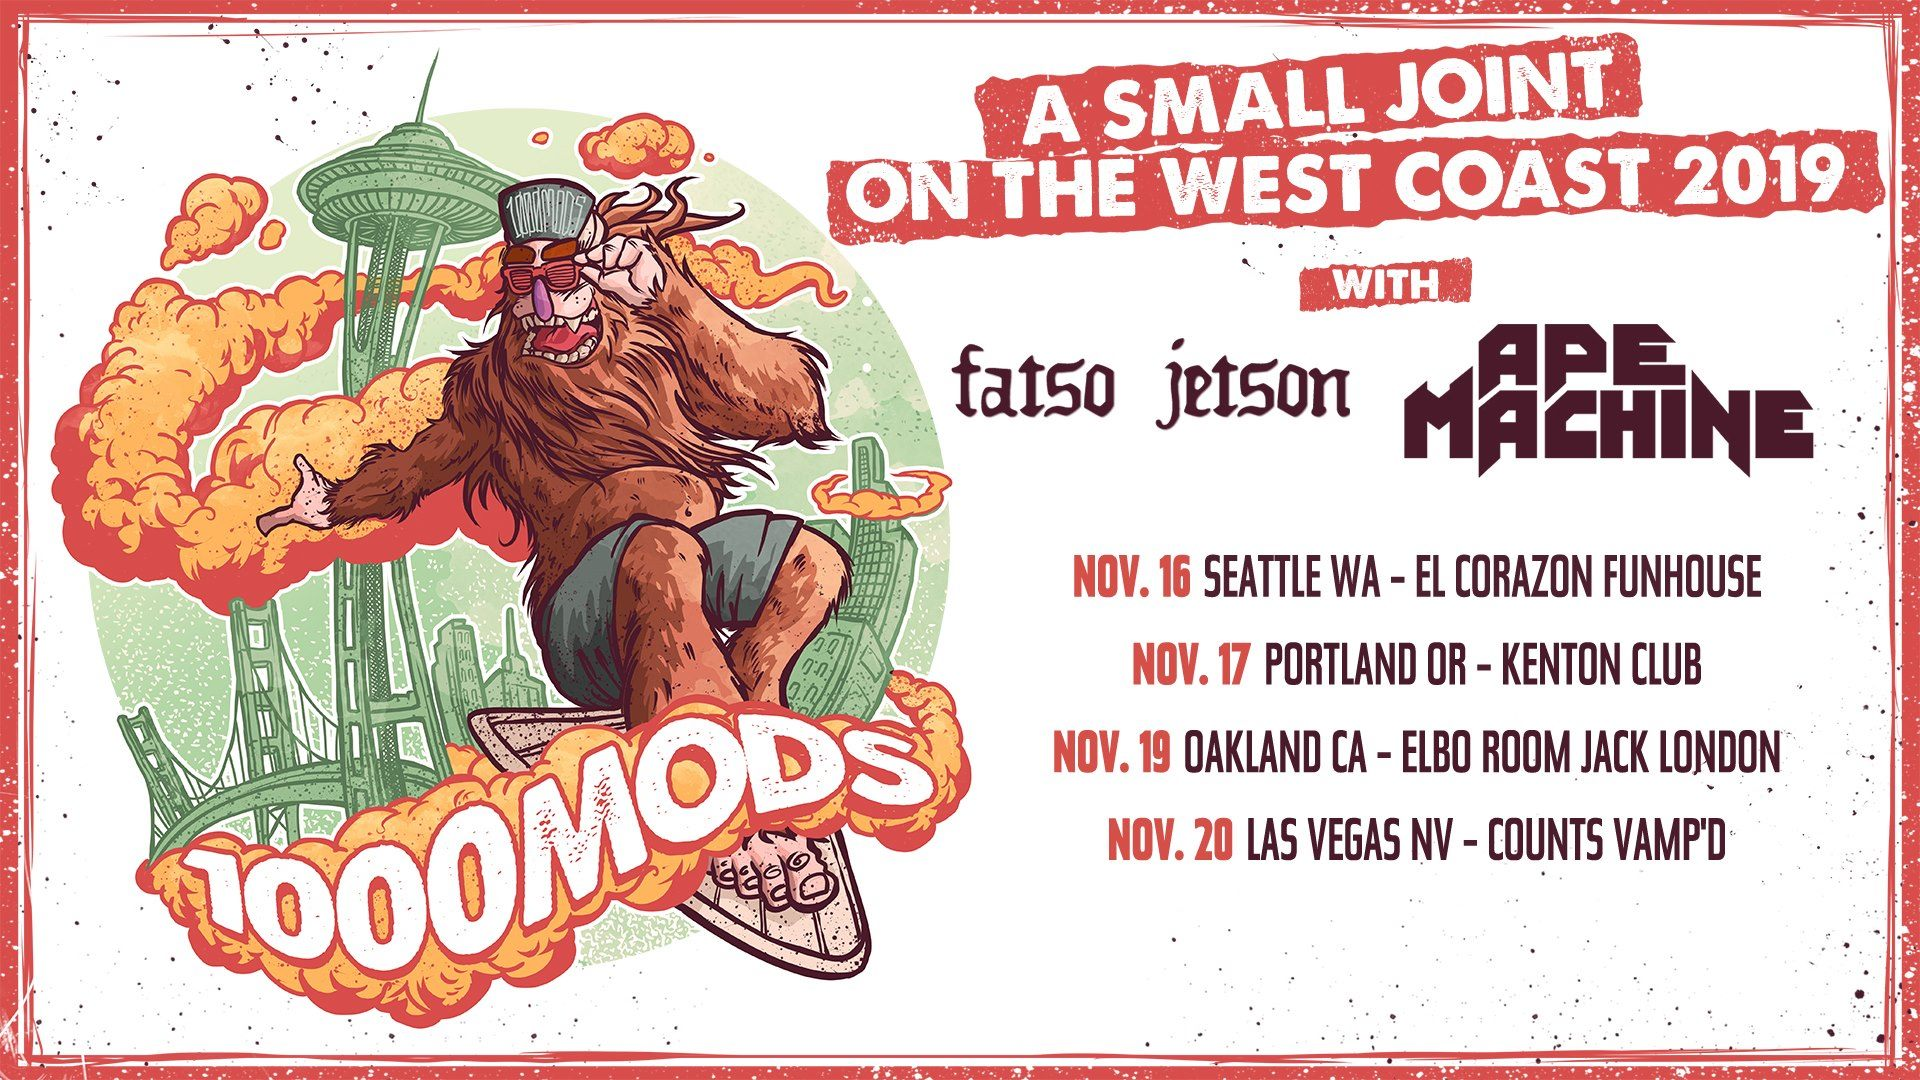 1000mods west coast shows